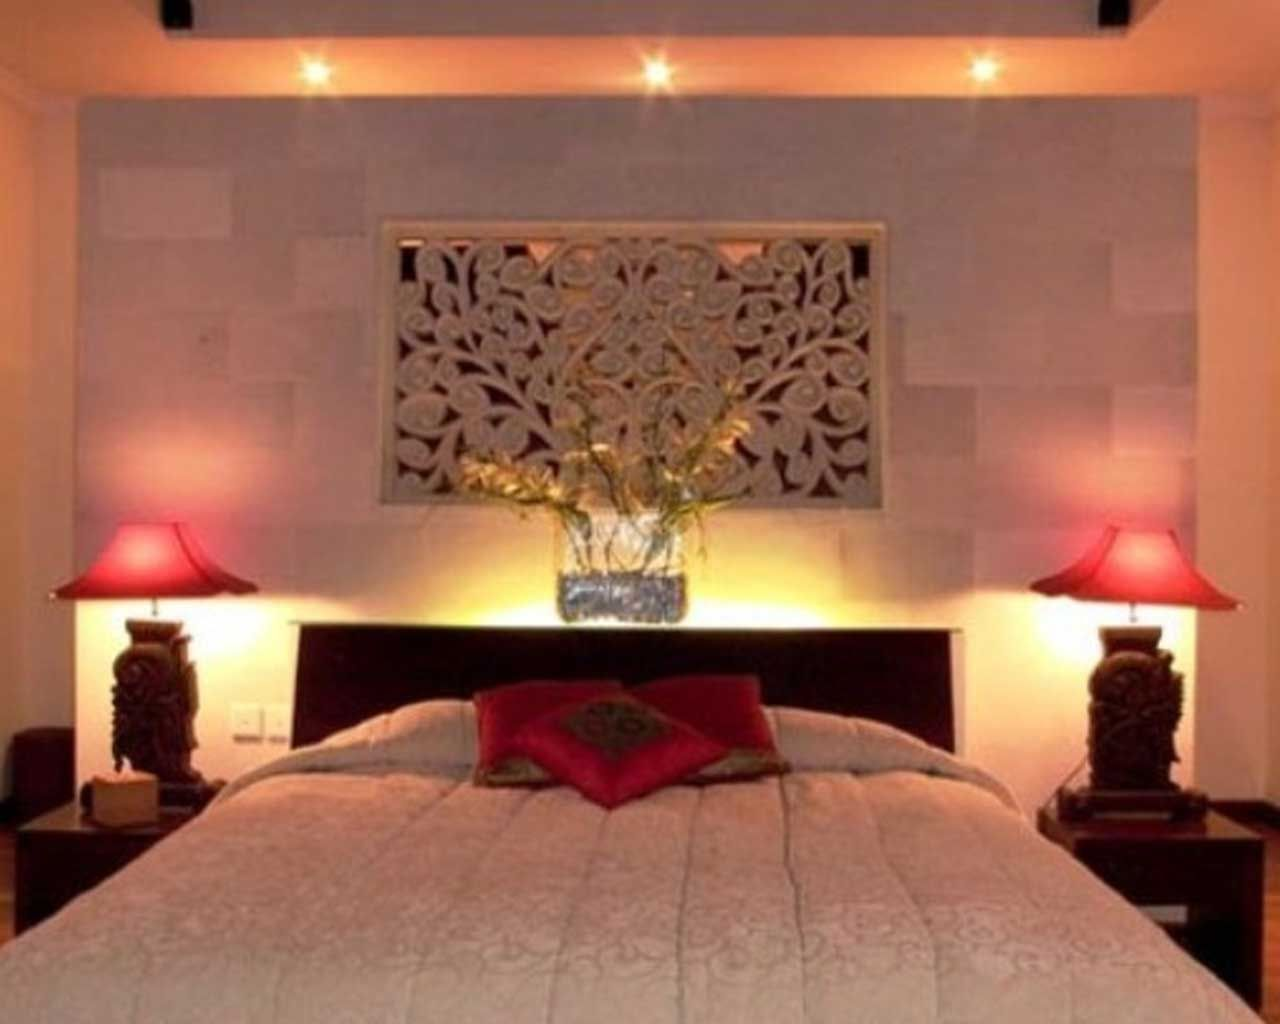 Bedroom romantic lighting - Bedroom Romantic Bedroom Lighting Ideas Feats Black Headboard And Red Accent Table Lamp For Lights